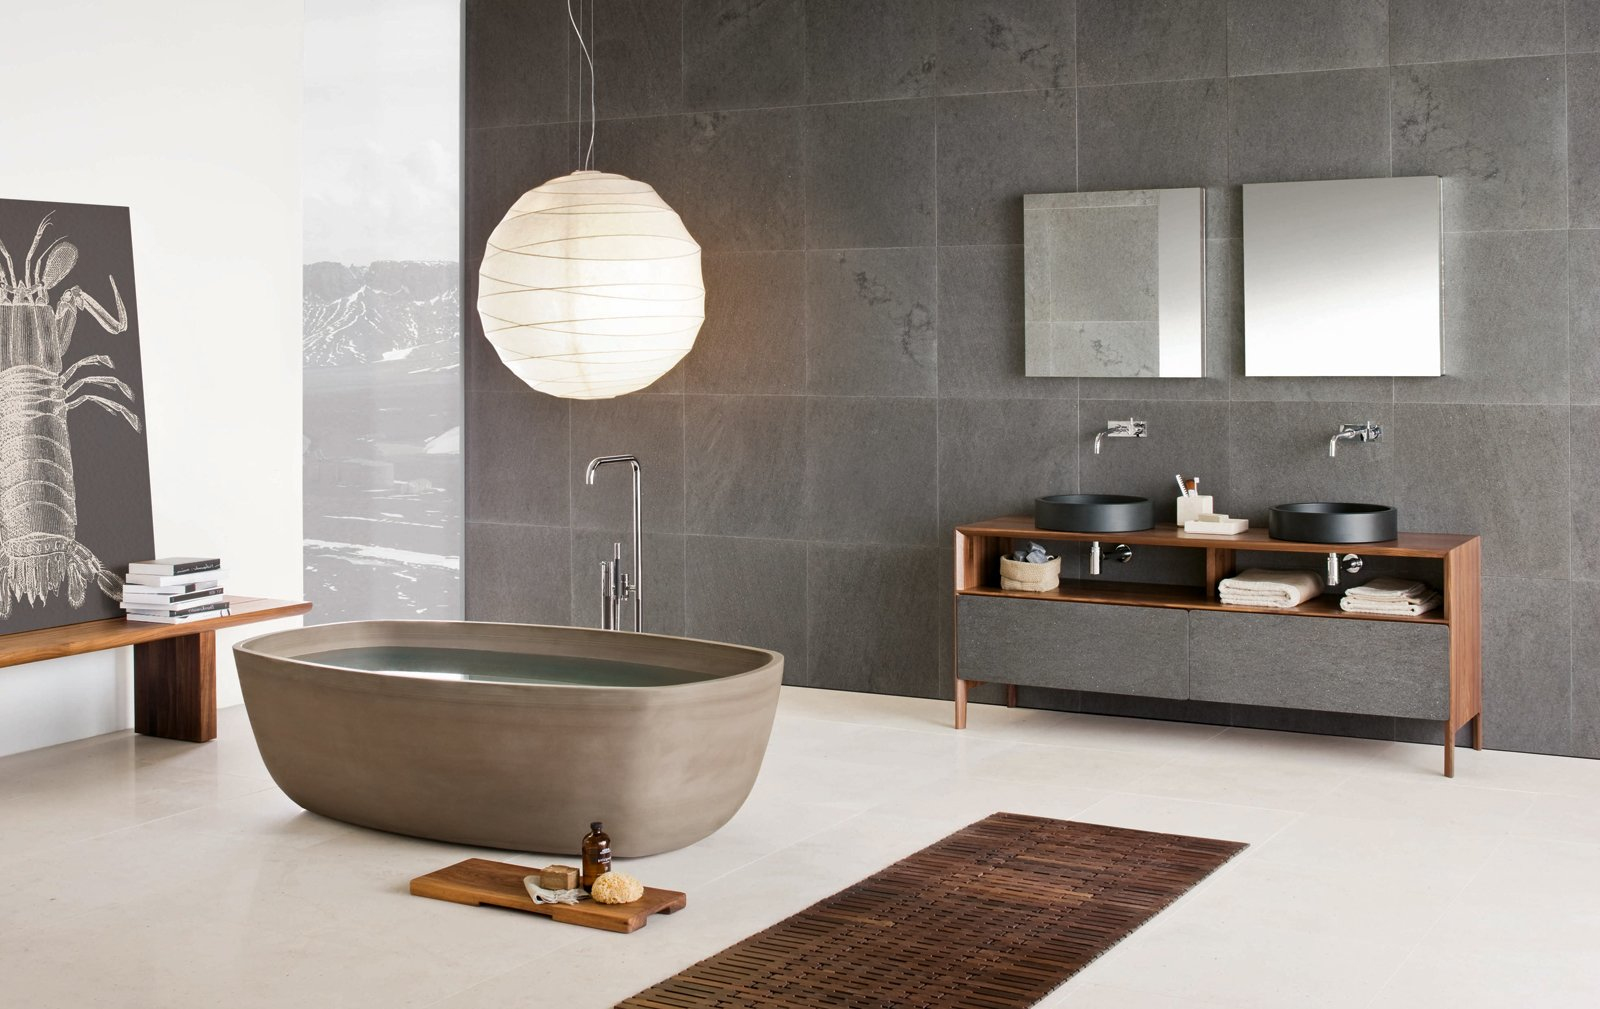 Bath Room, Freestanding Tub, Vessel Sink, and Wood Counter Inkstone bathtub in Sand Brown stone, Inkstone wash-basins, Black Rock stone, and Neos furniture (Neos furniture designed by Luca Martorano).  Best Photos from Inky Inspiration